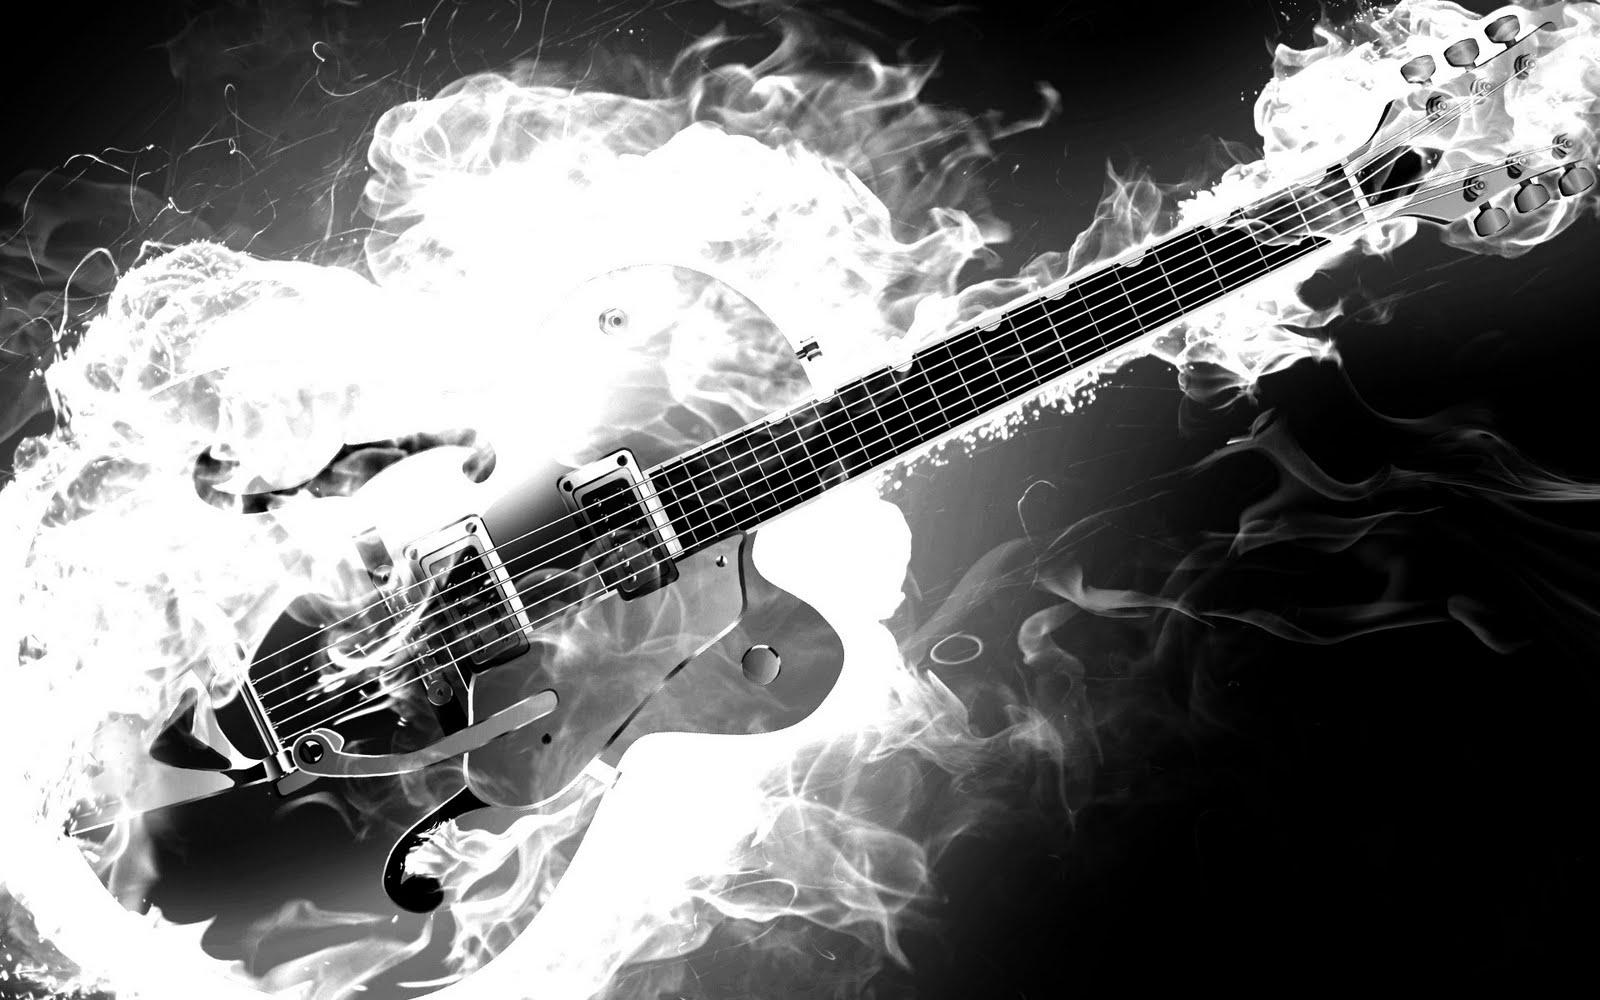 Wallpapers For > Cool Guitar Backgrounds Hd 1080p